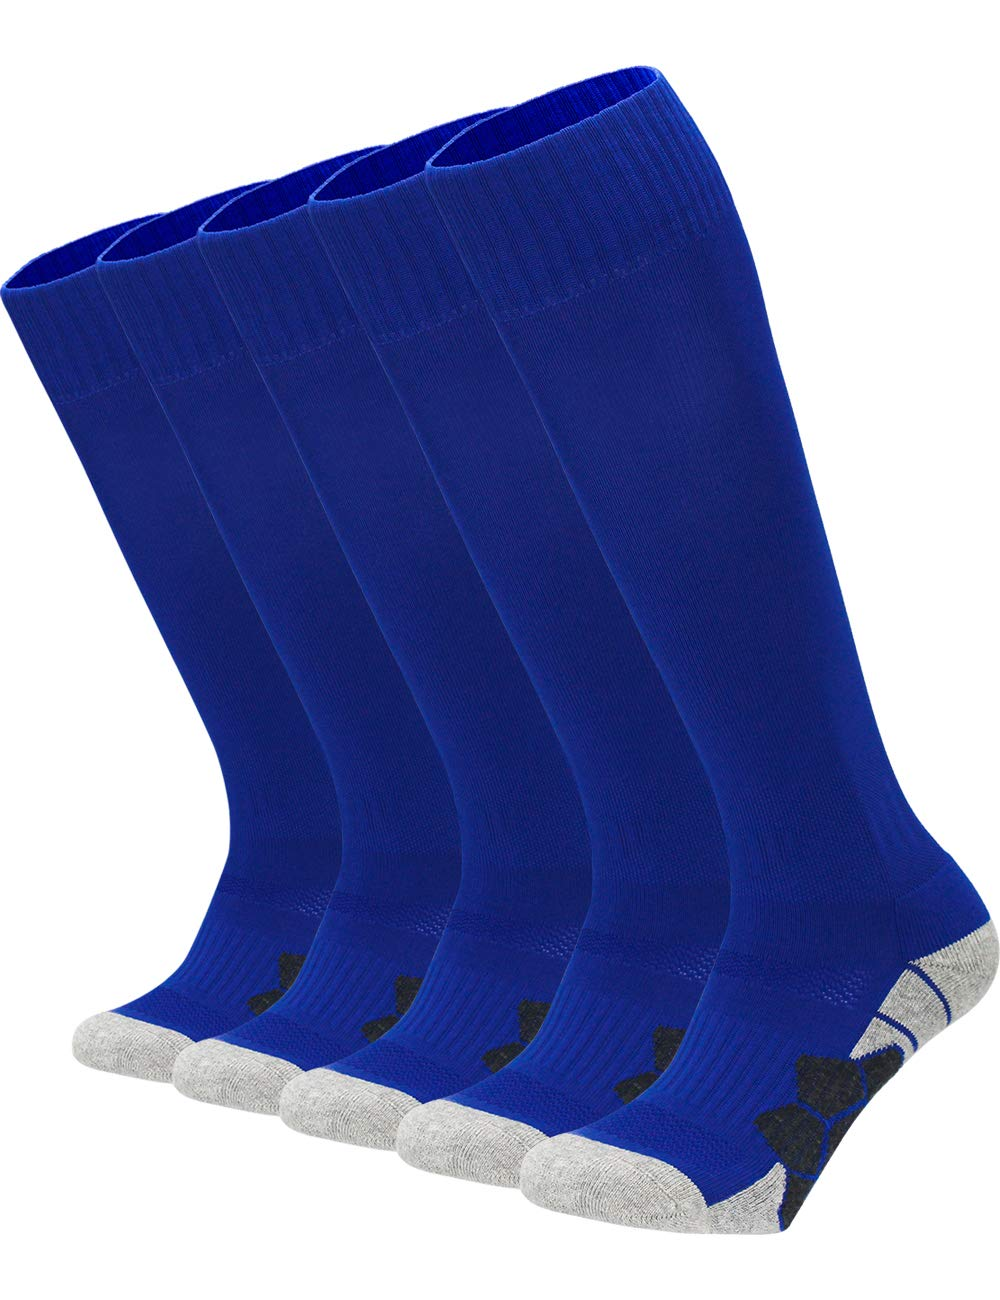 Youth Kids Adult Knee High Cotton Sports Compression Socks Boys Girls Parent-Child Outdoor Active Long Towel Bottom Socks, 5-Pair Blue, Size L (Kids 9C-13C / W 10-13 / M 8-12) by APTESOL